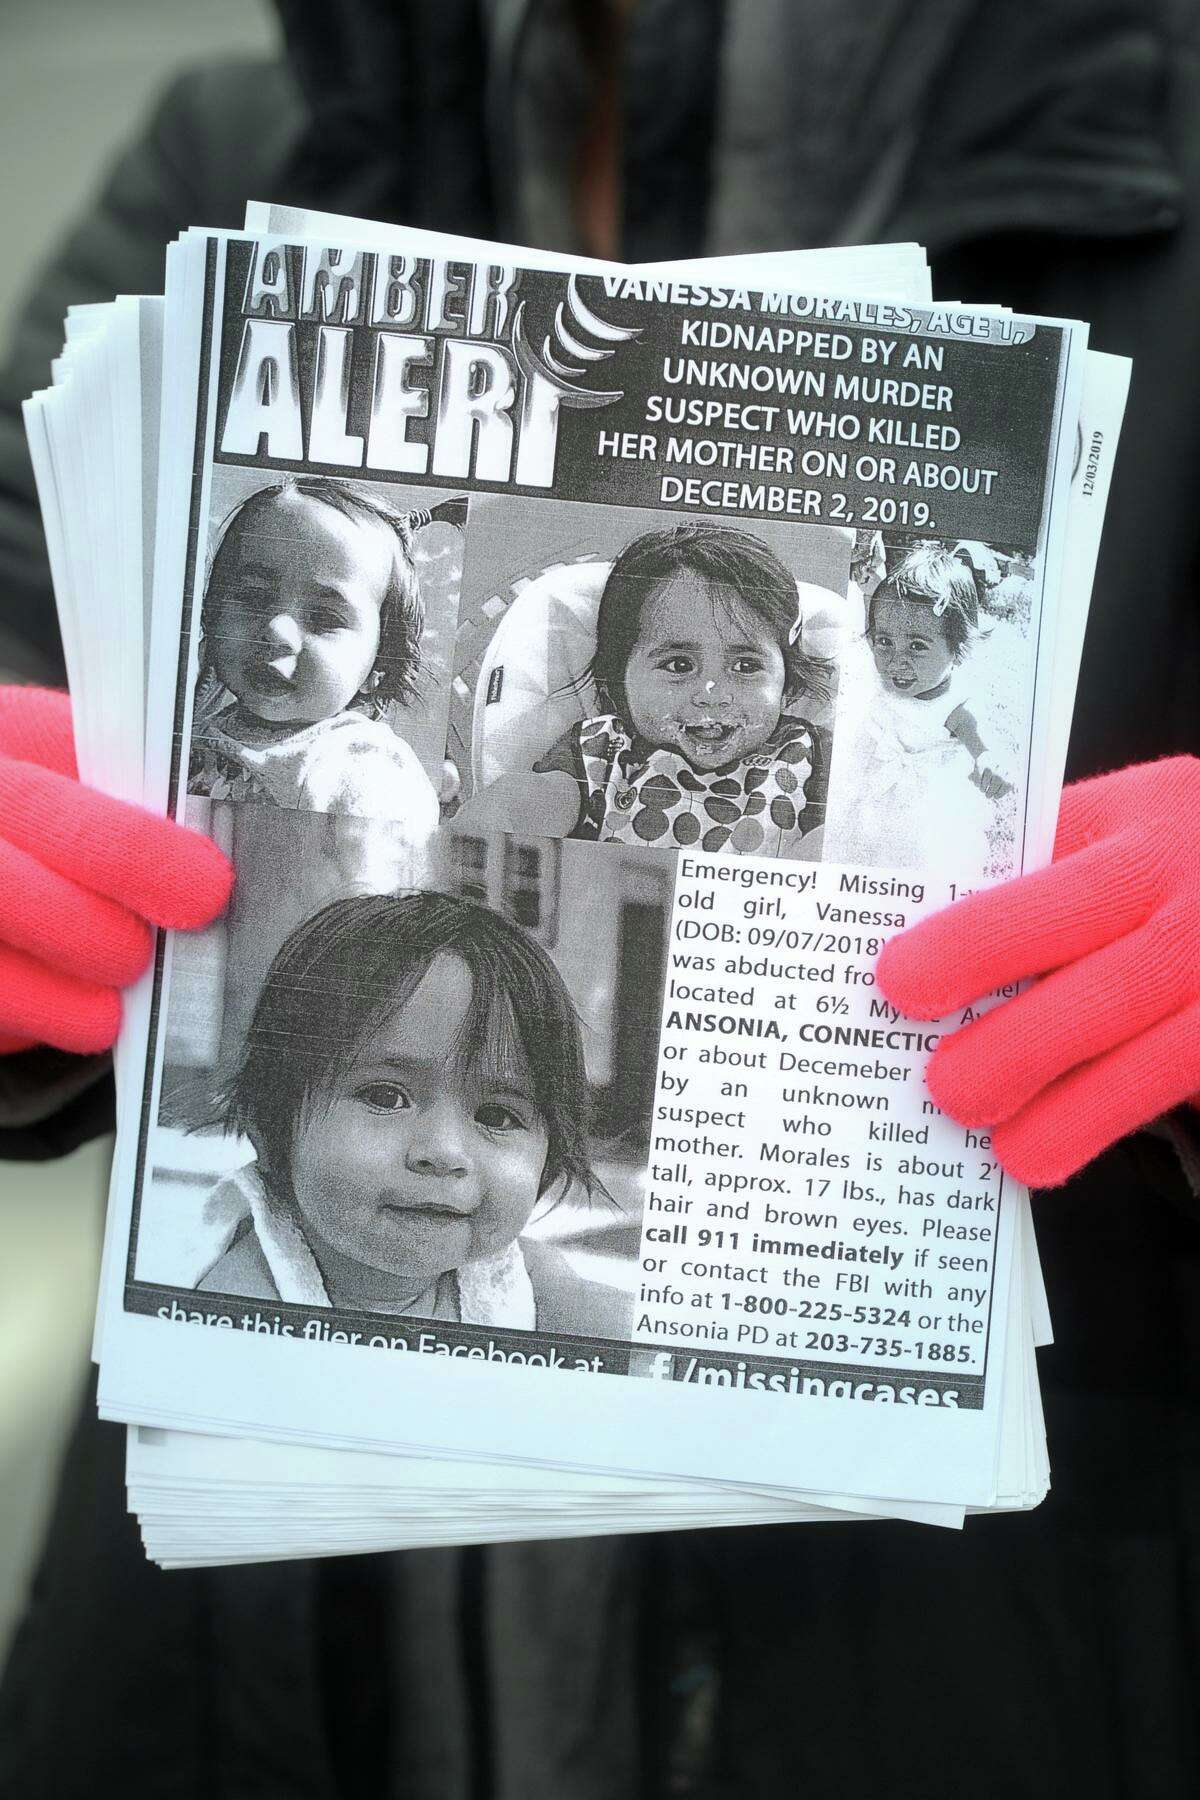 Residents concerned with finding Vanessa Morales, the Ansonia toddler who went missing after the murder of her mother, still continue to hand out flyers to bring attention to the case.